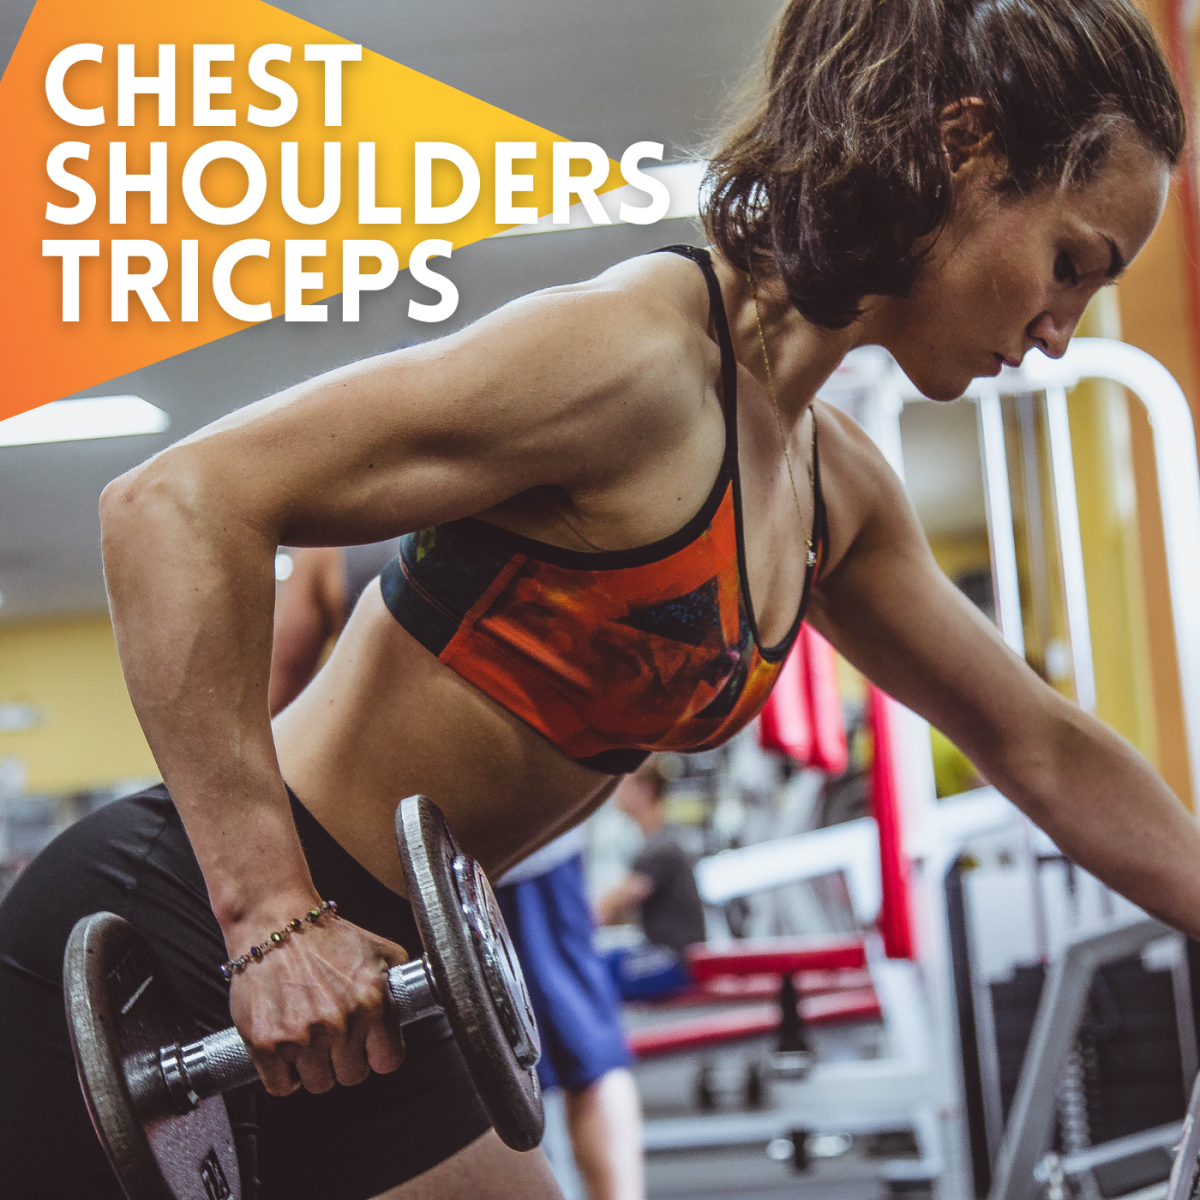 Weight training exercises for the chest, shoulders, and triceps are becoming more popular with women. Find out why along with detailed explanations of 8 simple exercises.